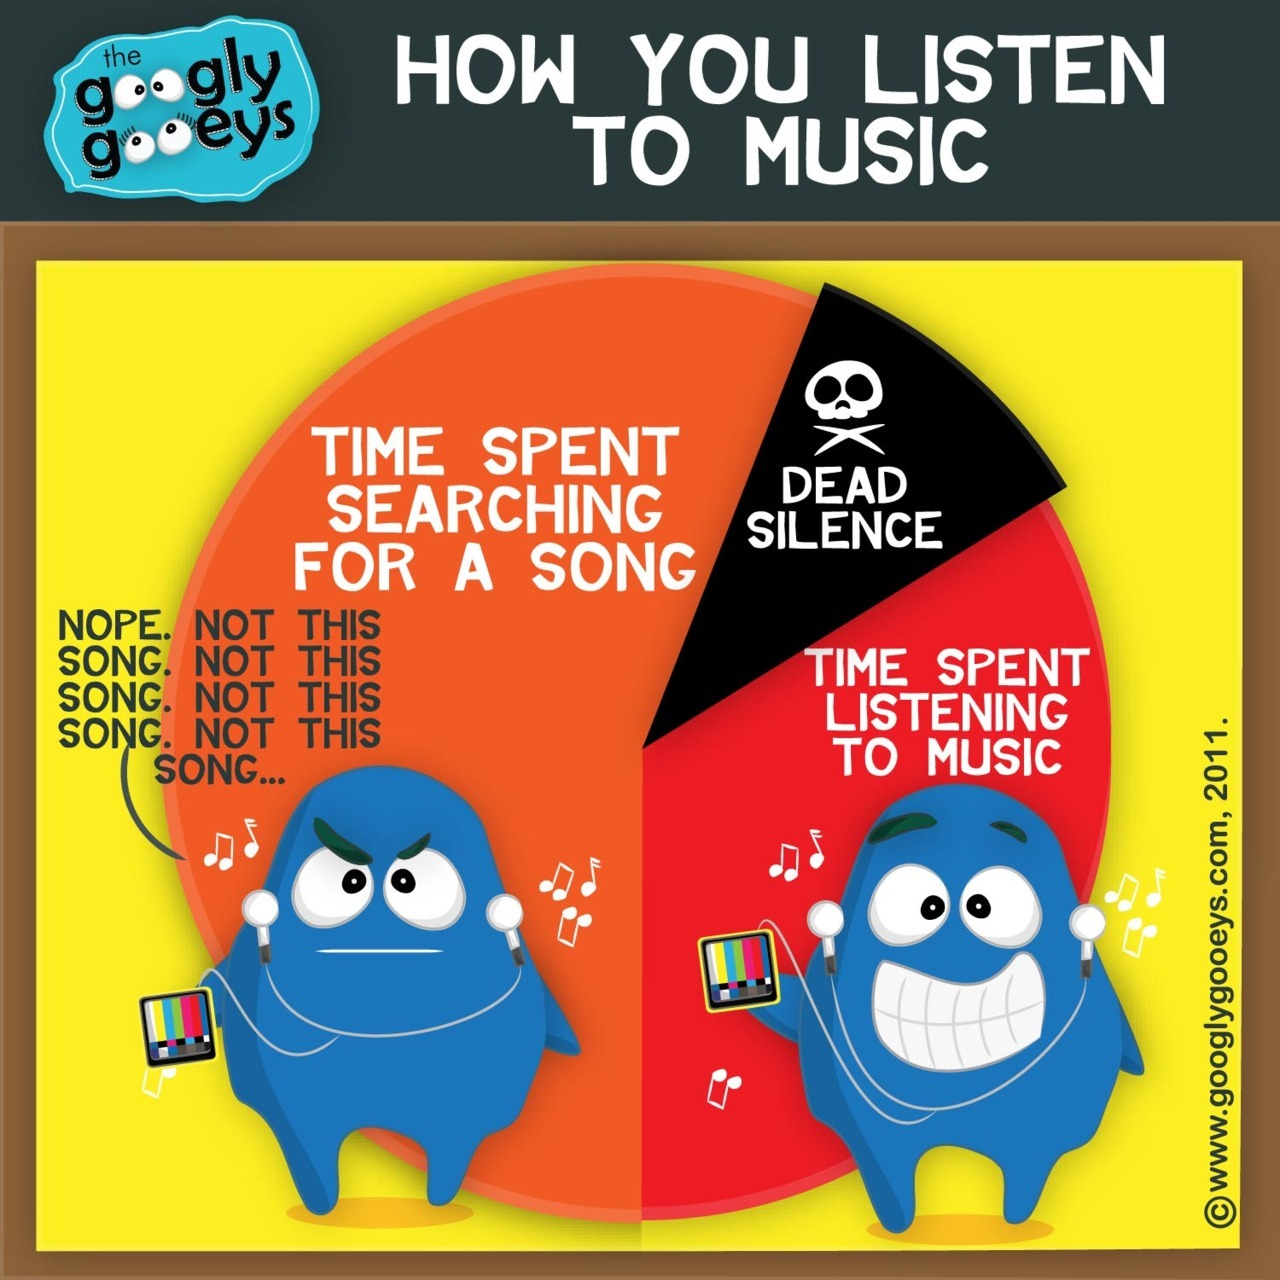 googlygooeys:  How much time do you spend skipping tracks when listening to music? More music? Click here.